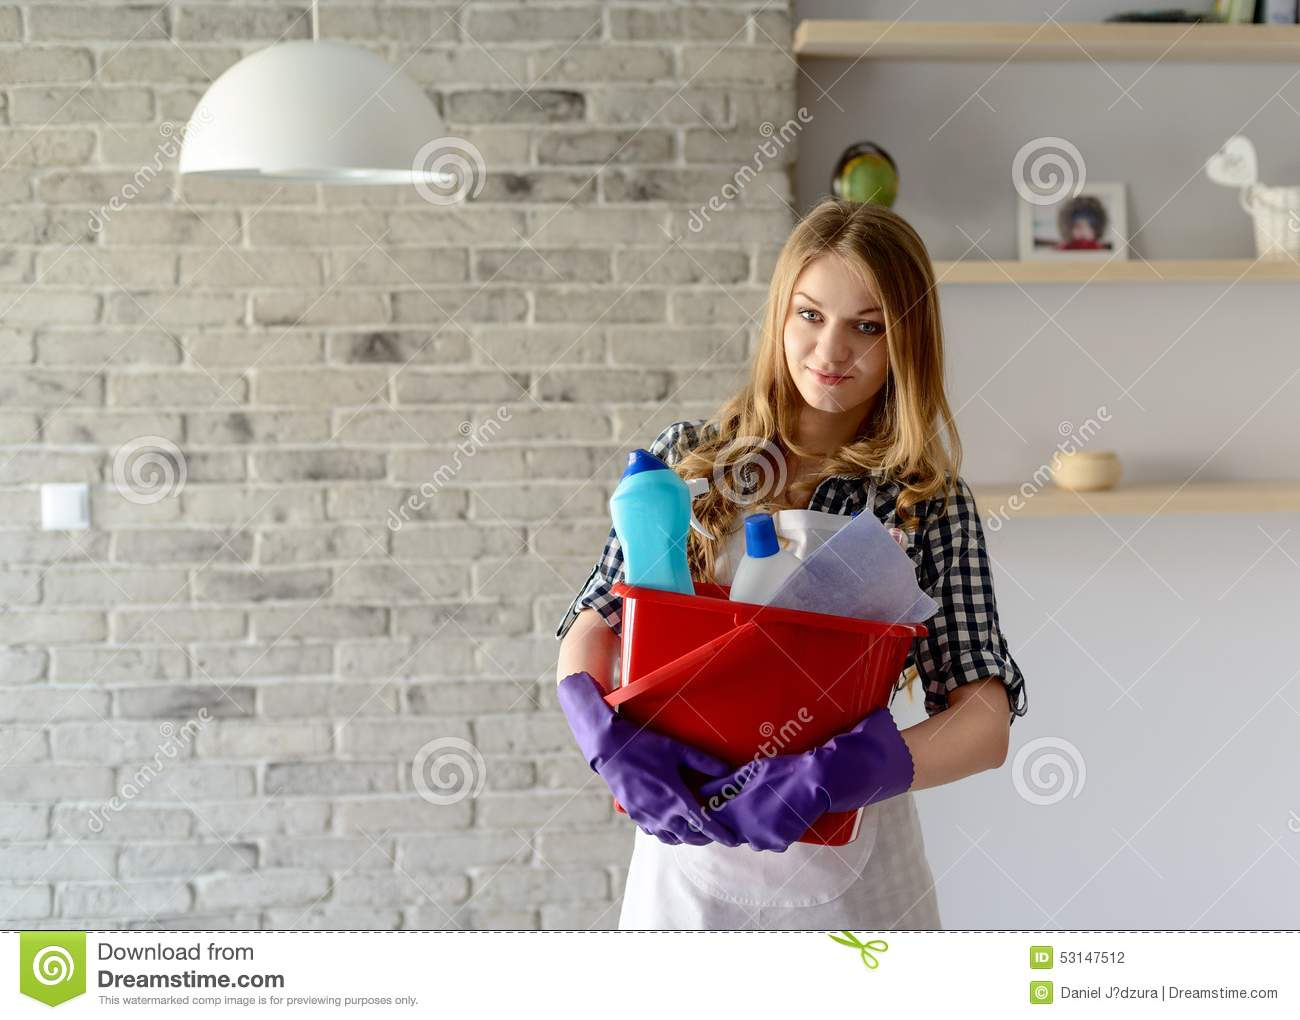 White gloves apron cleaning services - Smiling Blond Woman Holding A Bucket Full Of Cleaners